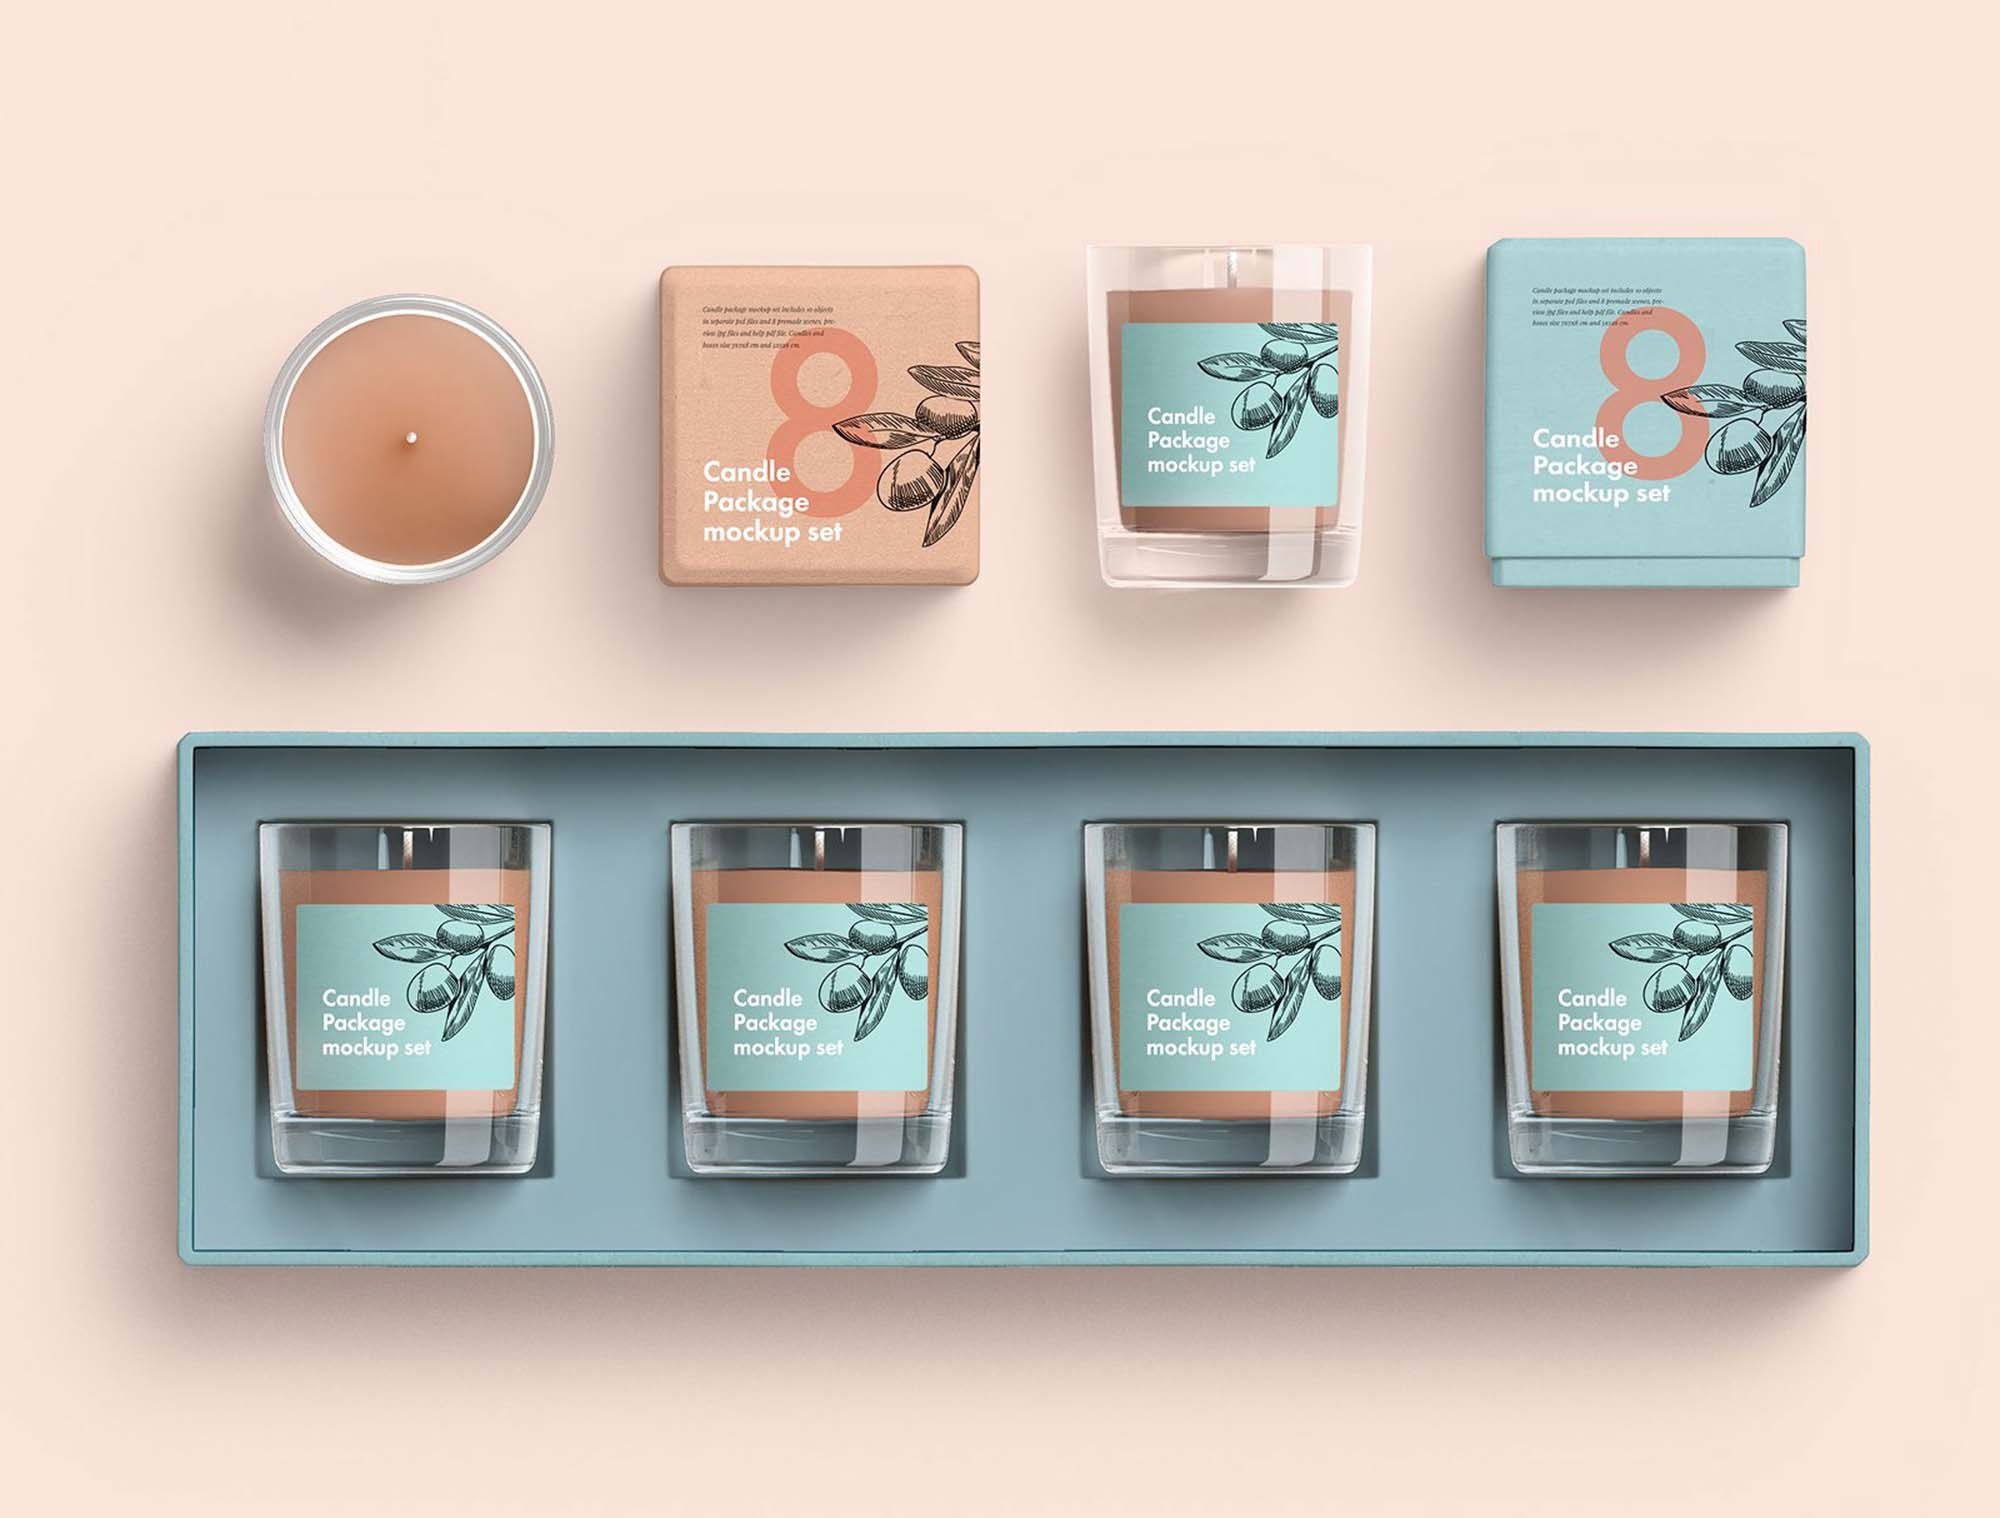 Candle Package Mockup